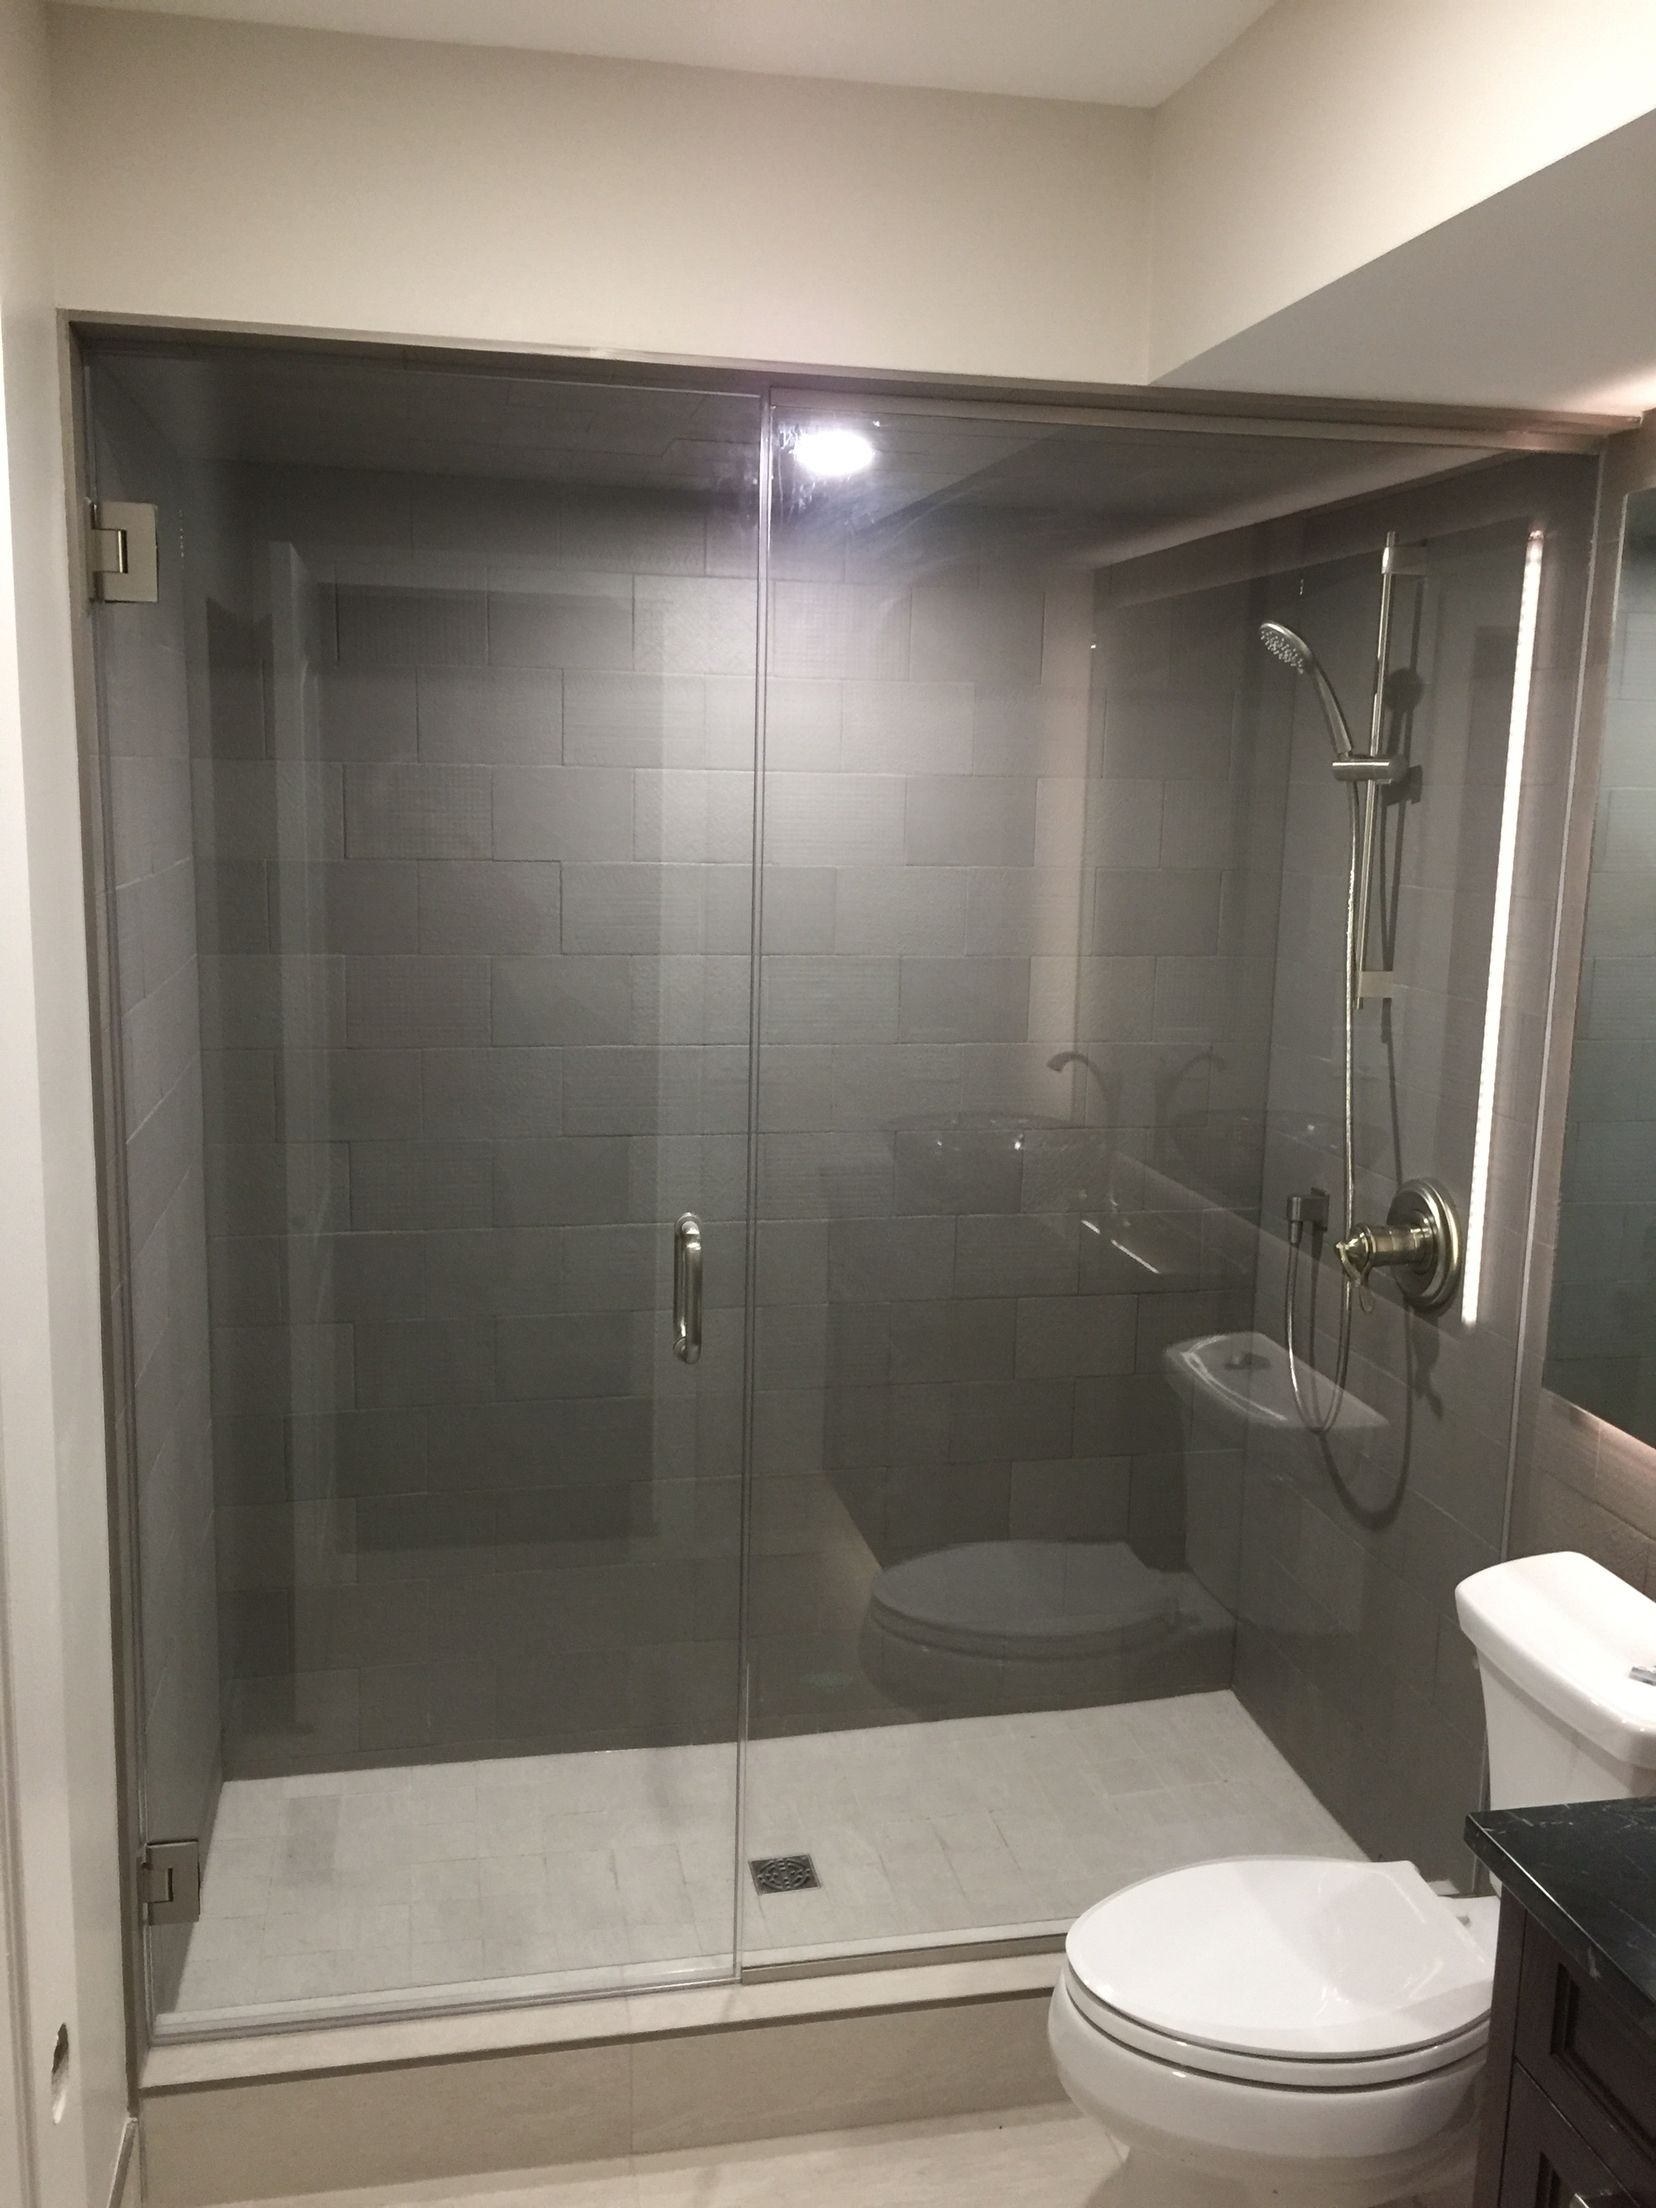 Frameless Shower Doors Glass Shower Doors 10mm Glass Regal Shelf And Mirror Glass Shower Doors Shower Doors Frameless Shower Doors